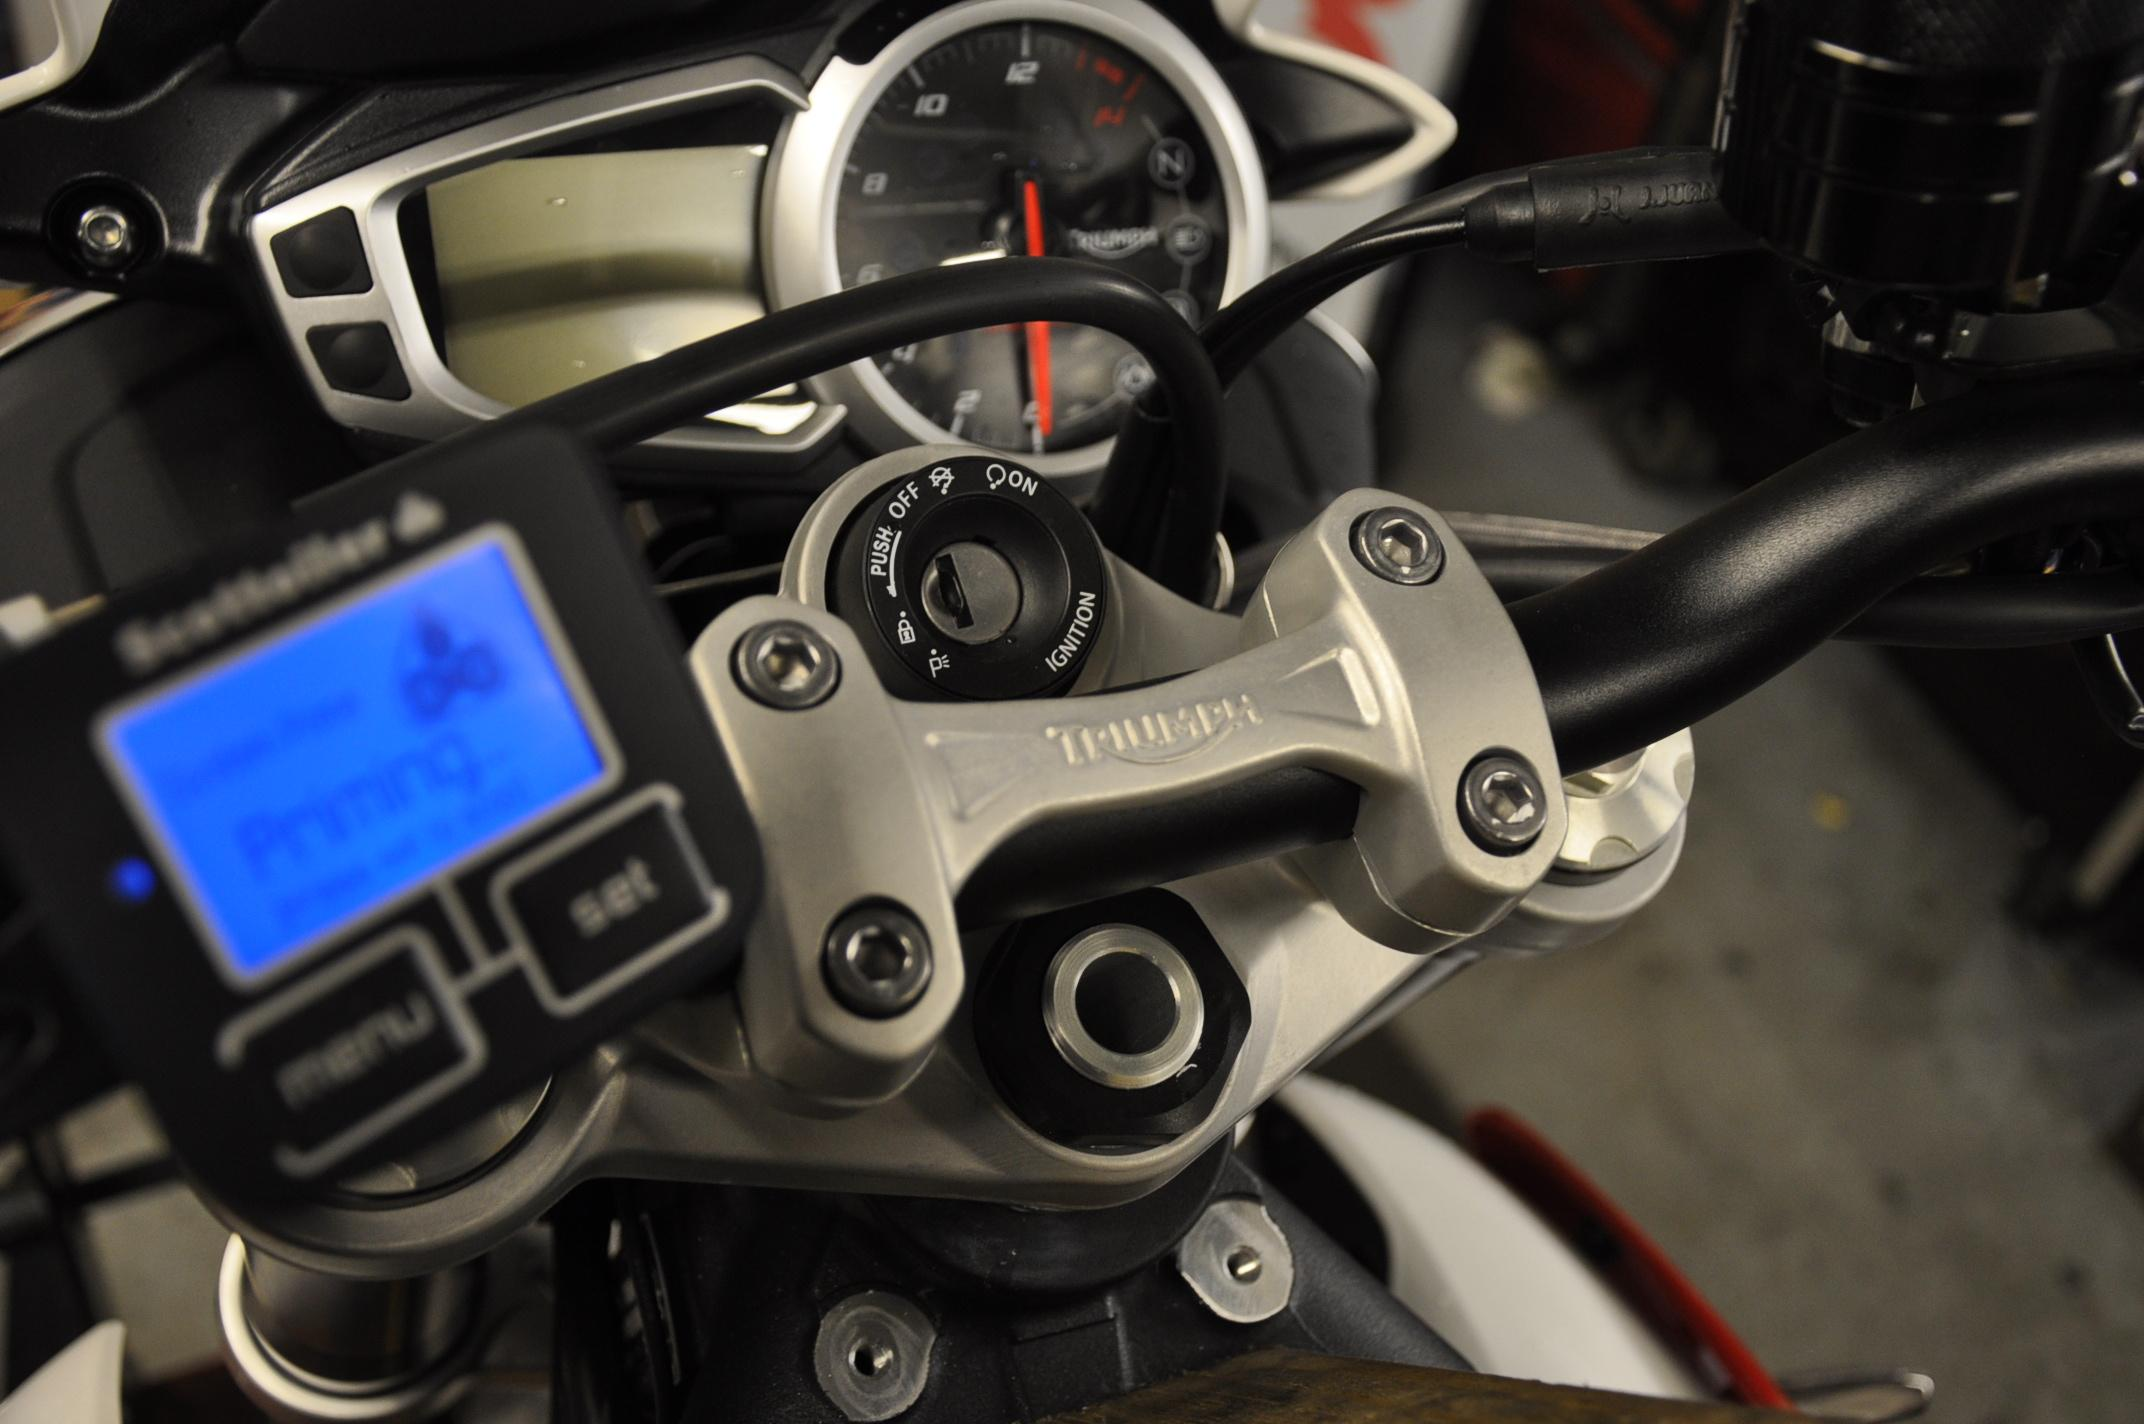 Street Triple (2013 - 2016) eSystem display